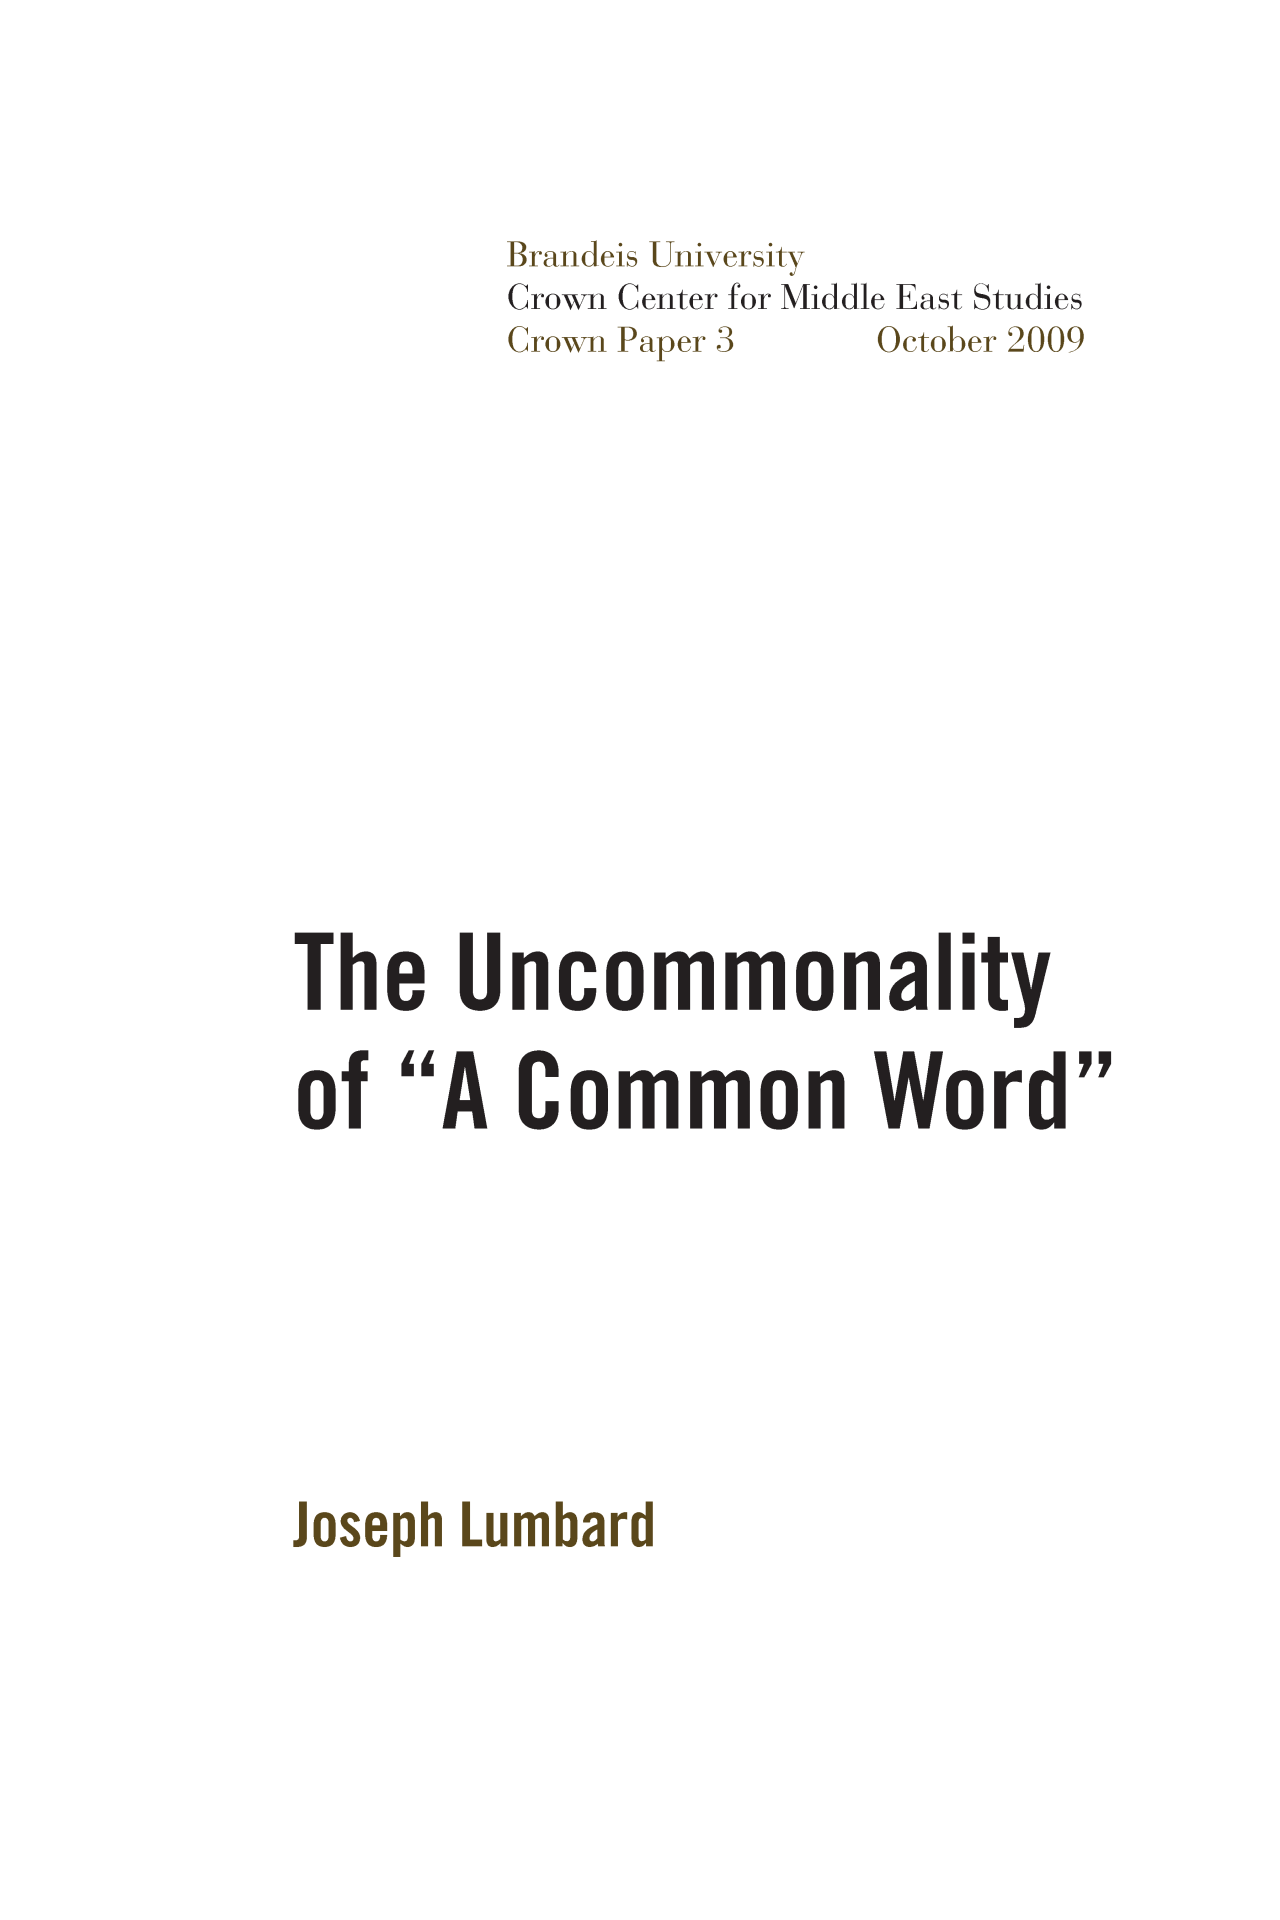 The Uncommonality Of A Common Word